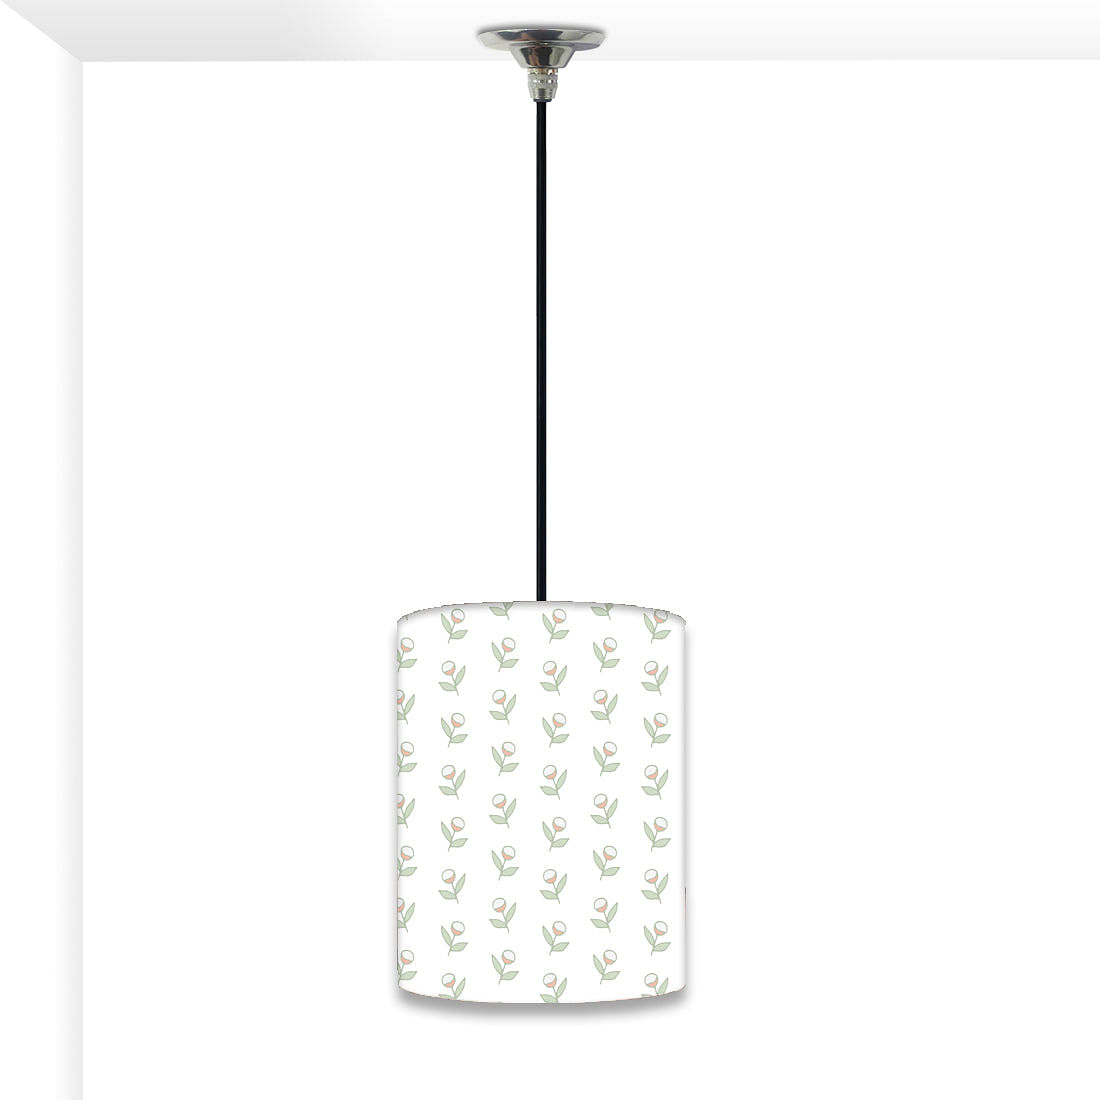 New Bedside Hanging Pendant Lamp